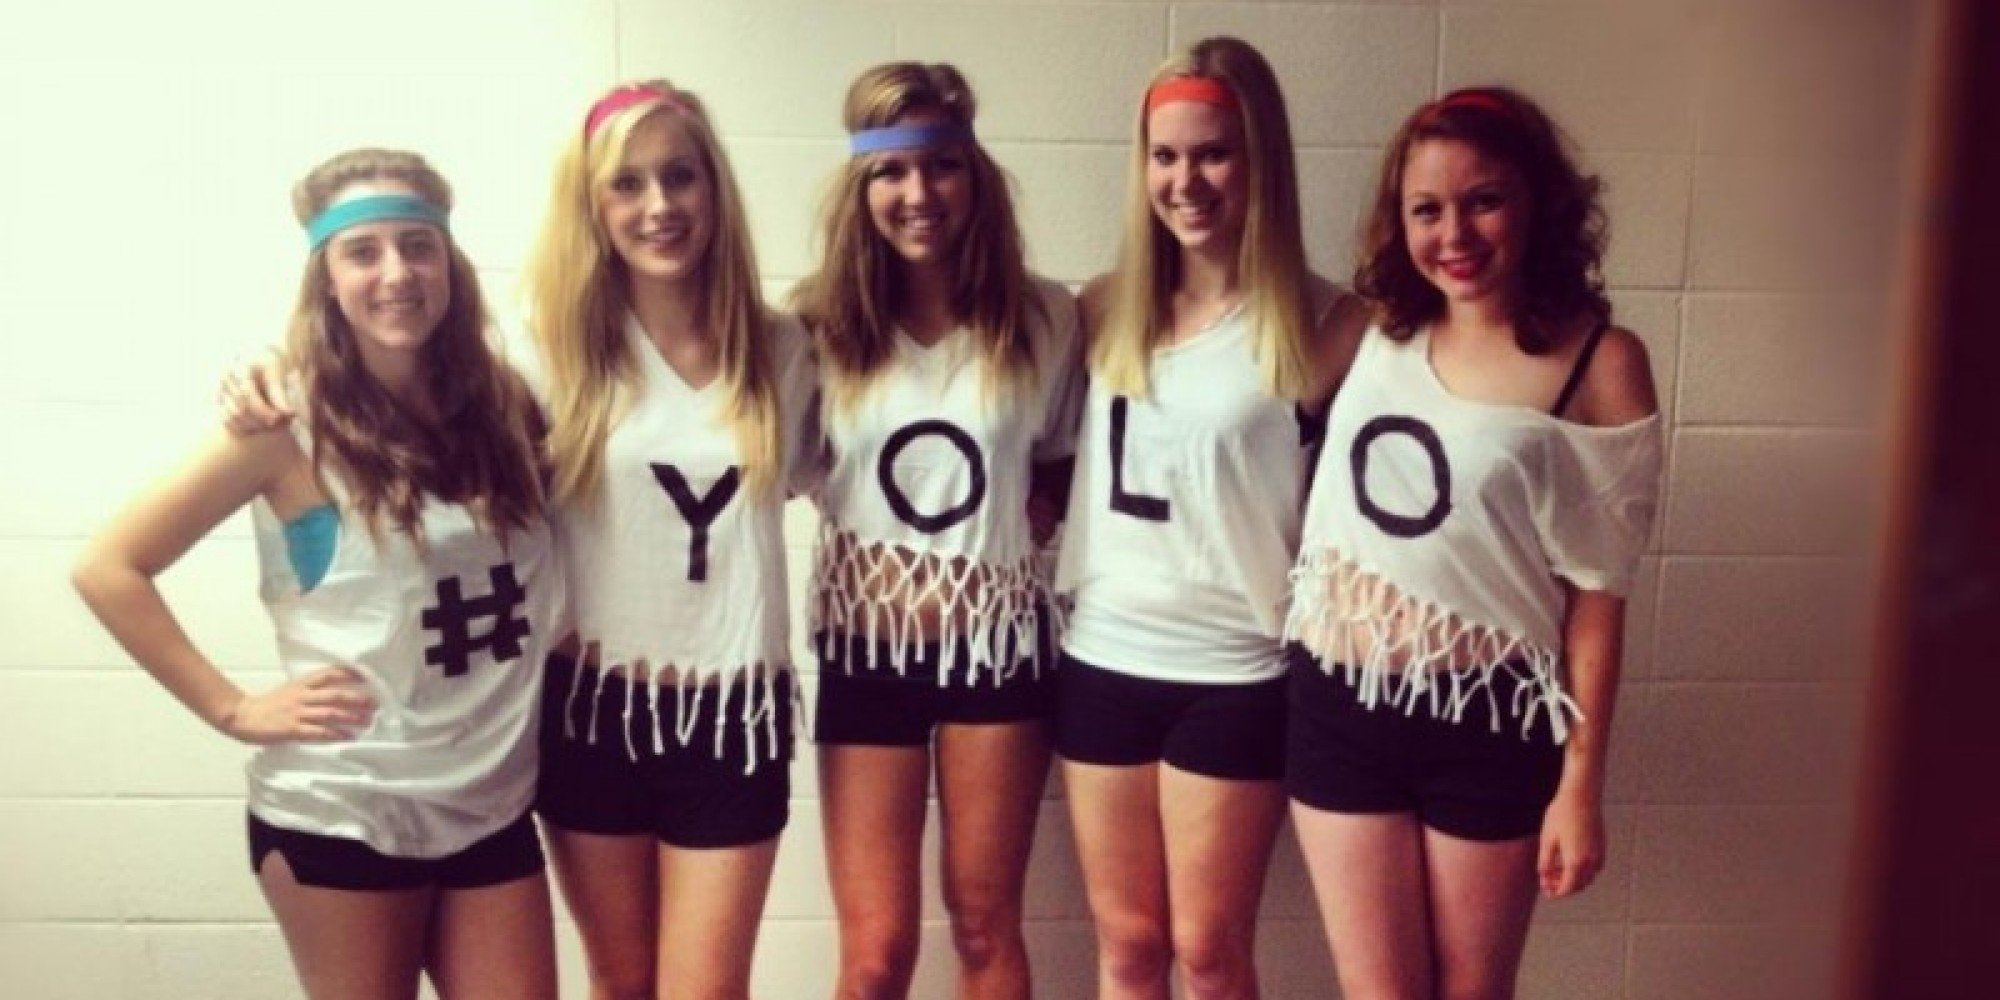 10 Best Group Costume Ideas For 4 People group costume ideas that are cheap easy and totally diy for 2 2020